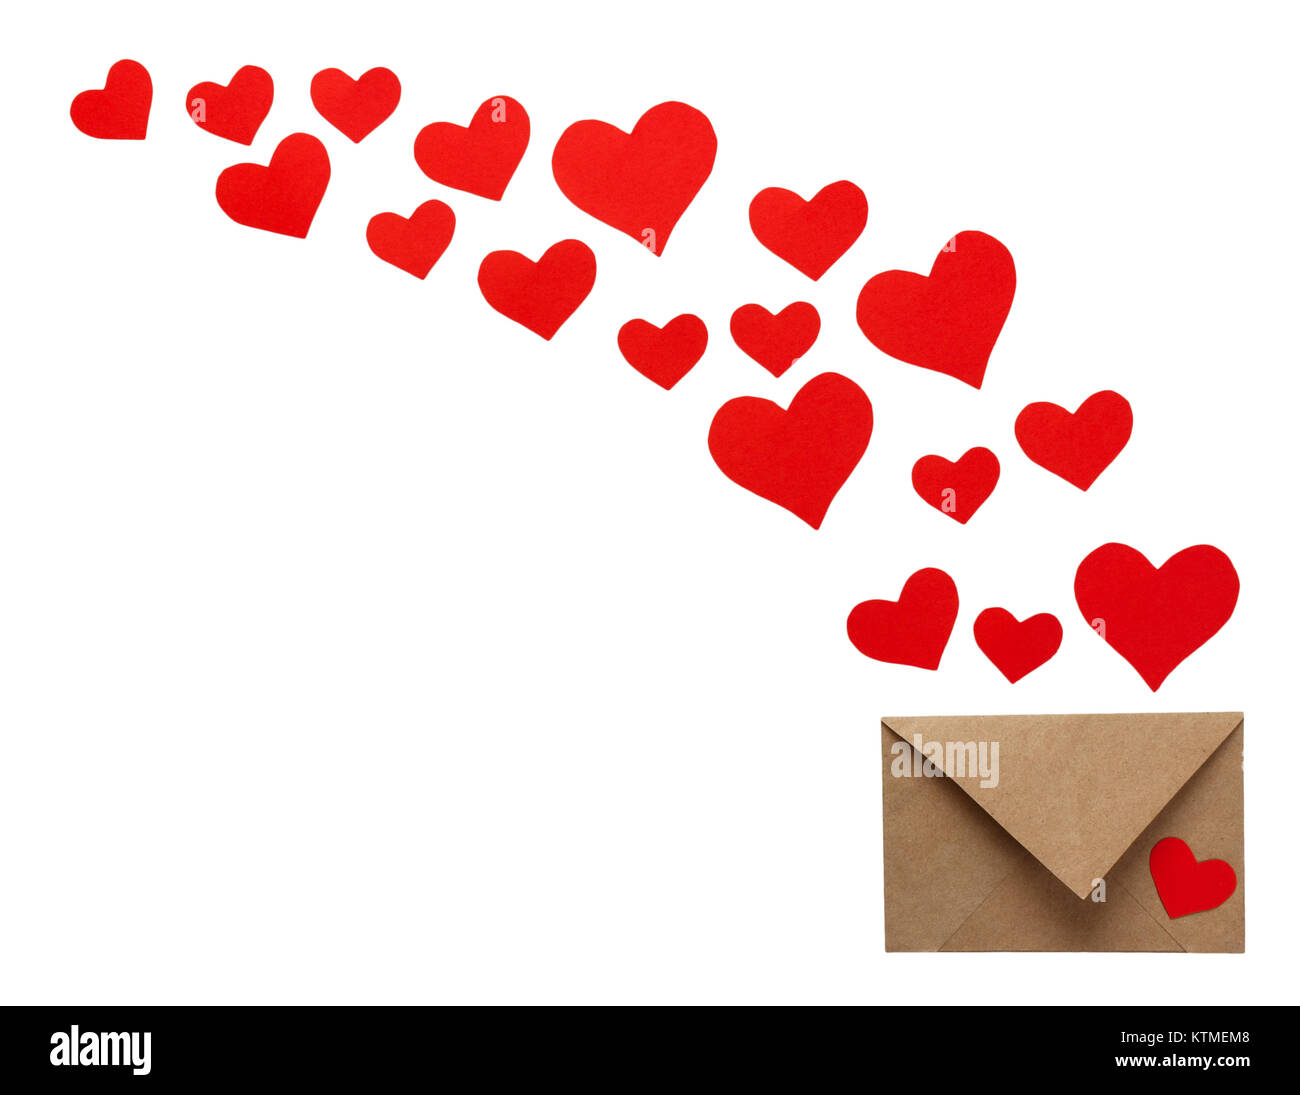 Colorful valentine day greeting card envelopes with heart red colorful valentine day greeting card envelopes with heart red hearts pours out of the envelope isolated on white hearts fly out from the envelope l kristyandbryce Gallery